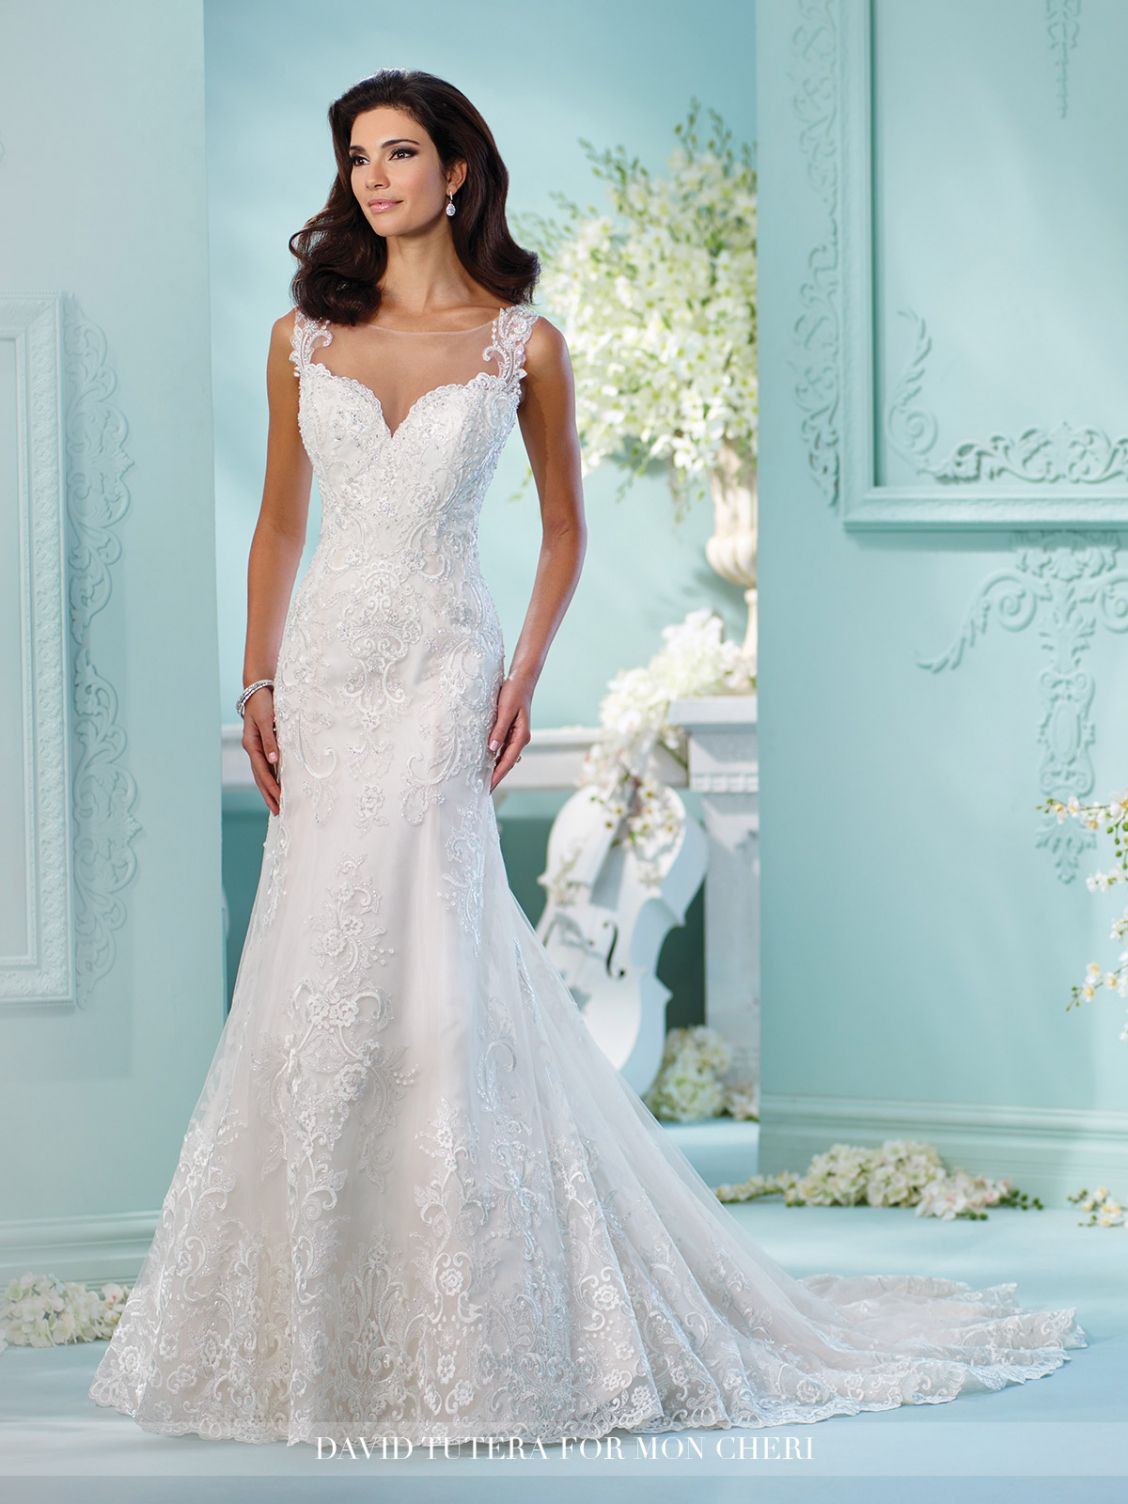 Wedding dresses stores in new jersey wedding dresses for guests